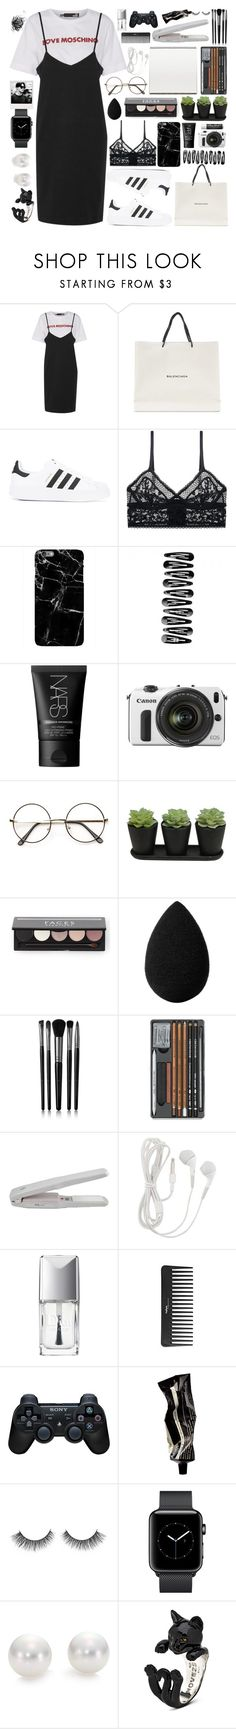 """Sin título #297"" by alita210100 ❤ liked on Polyvore featuring Love Moschino, Balenciaga, adidas, ELSE, Harper & Blake, NARS Cosmetics, Eos, Chapstick, FACES Beautiful and beautyblender"